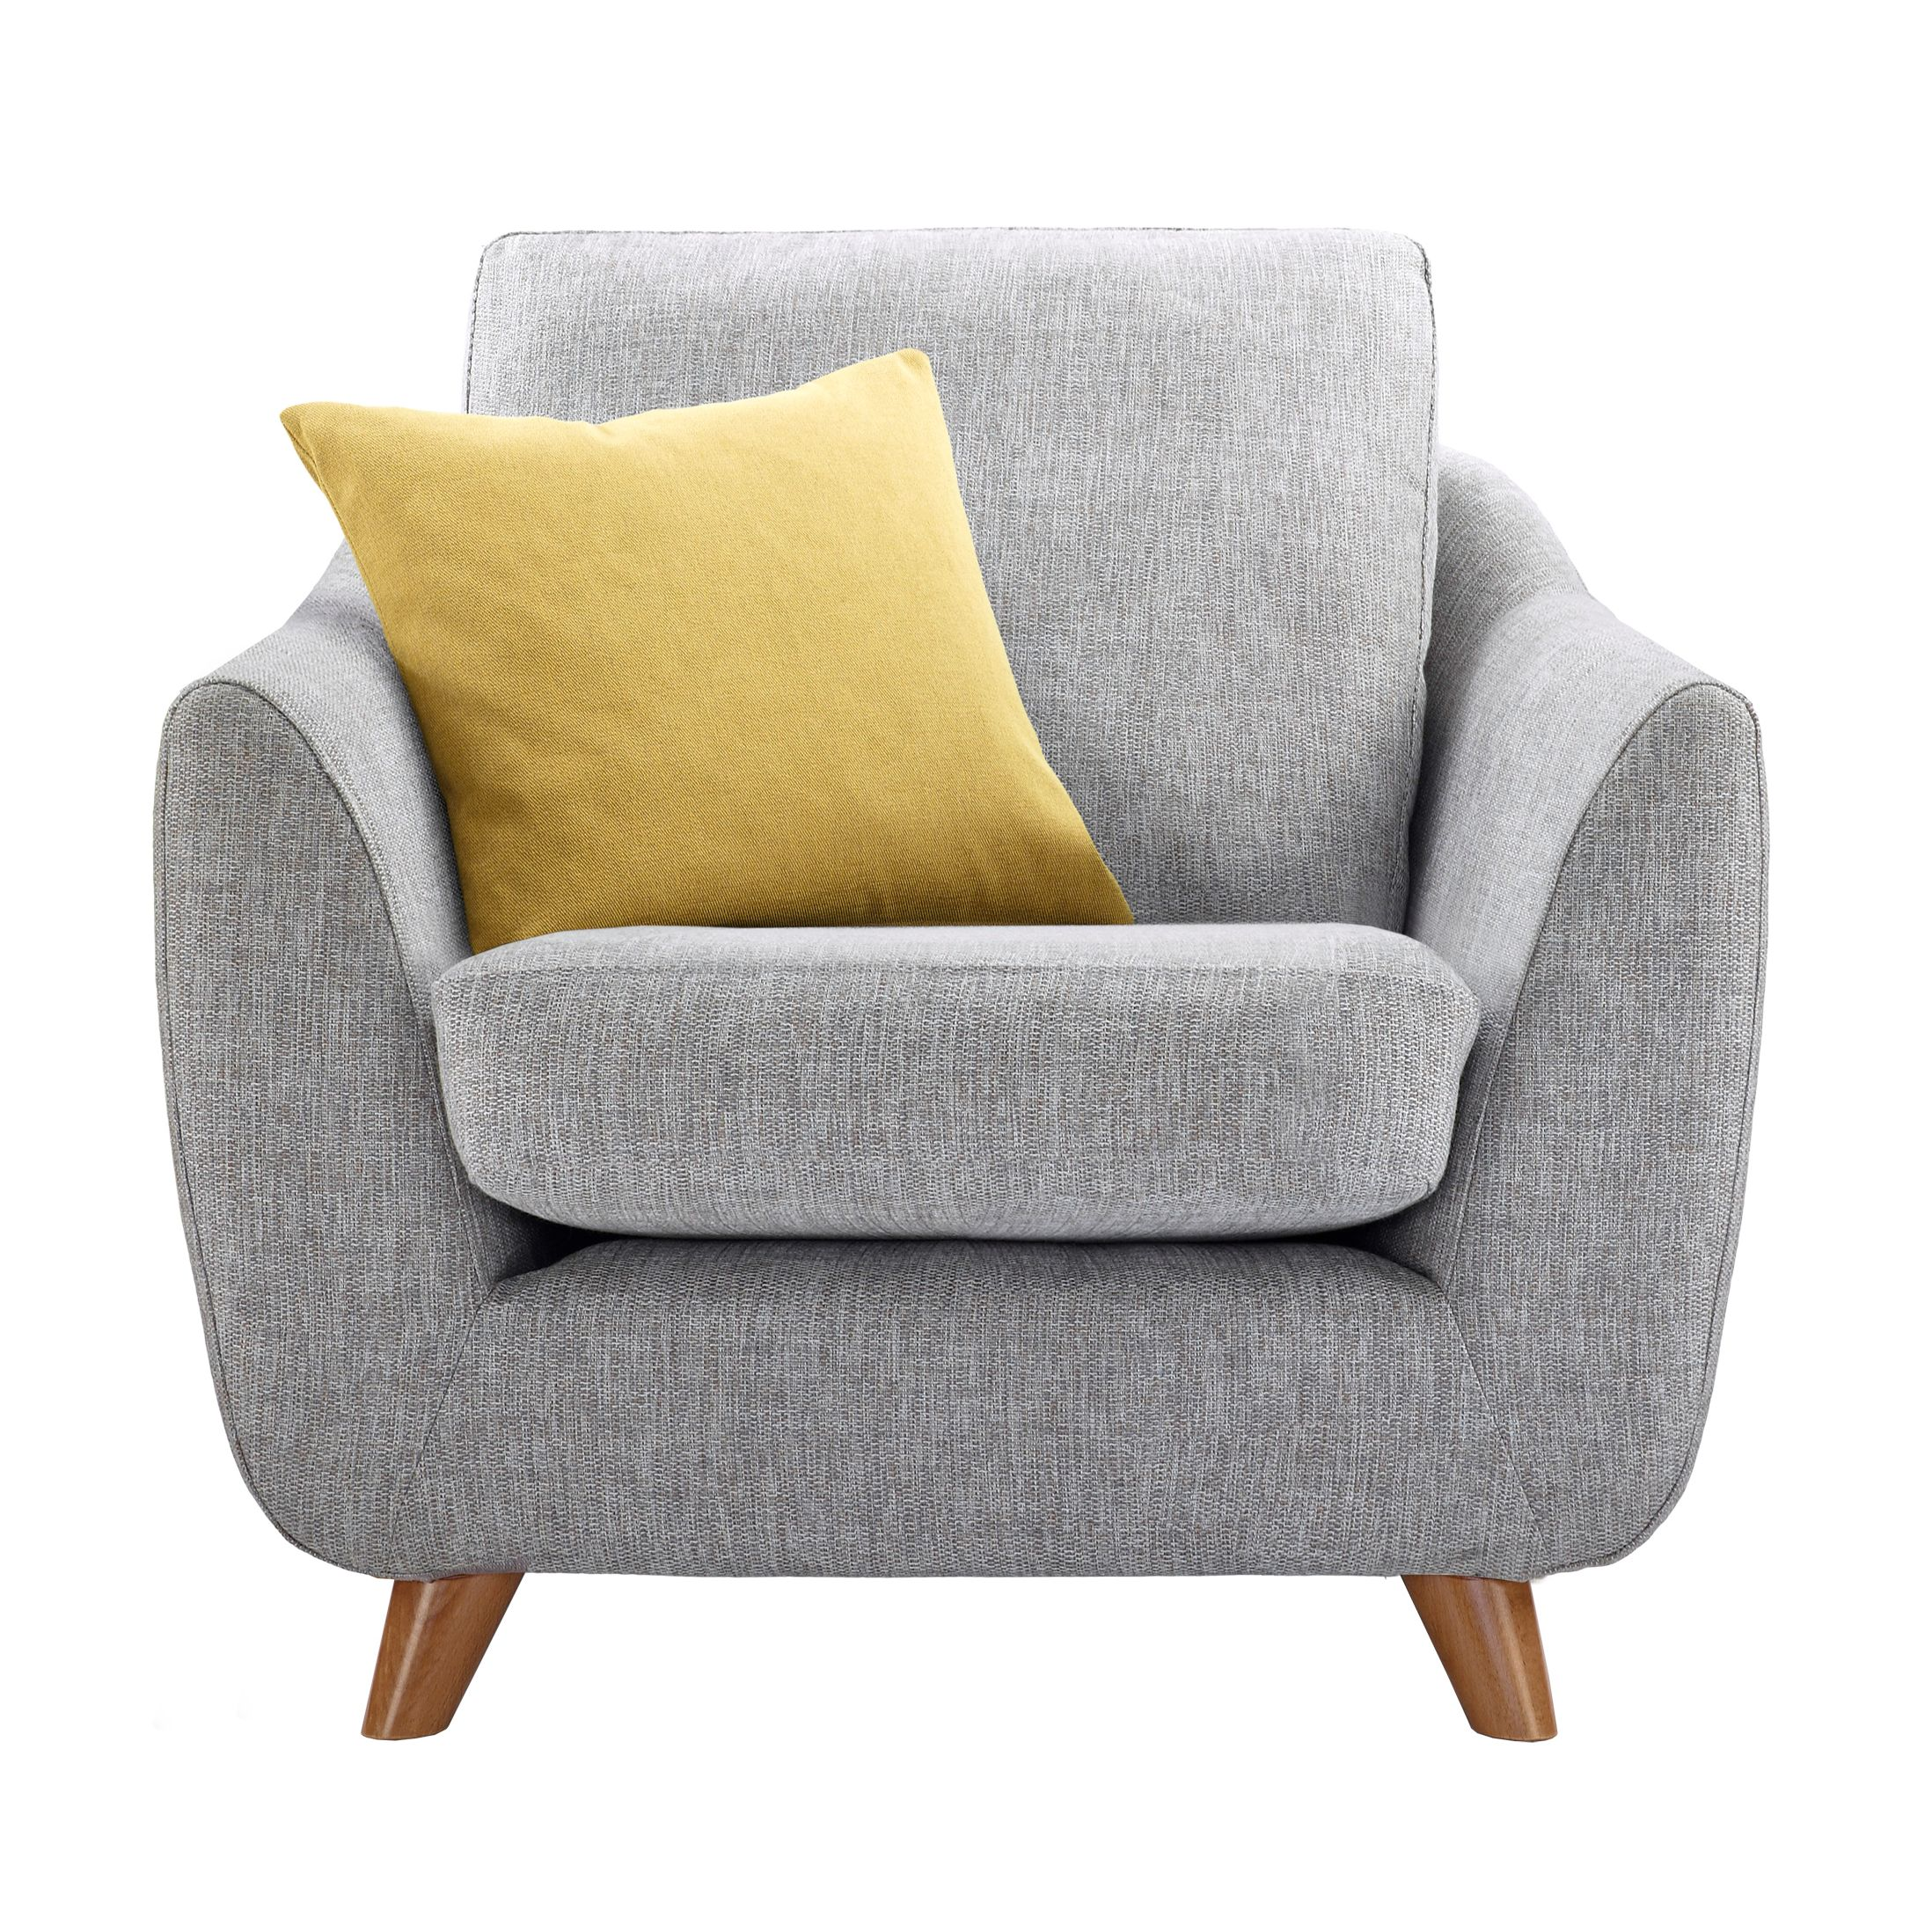 G Plan Vintage The Sixty Seven Armchair, Marl Grey